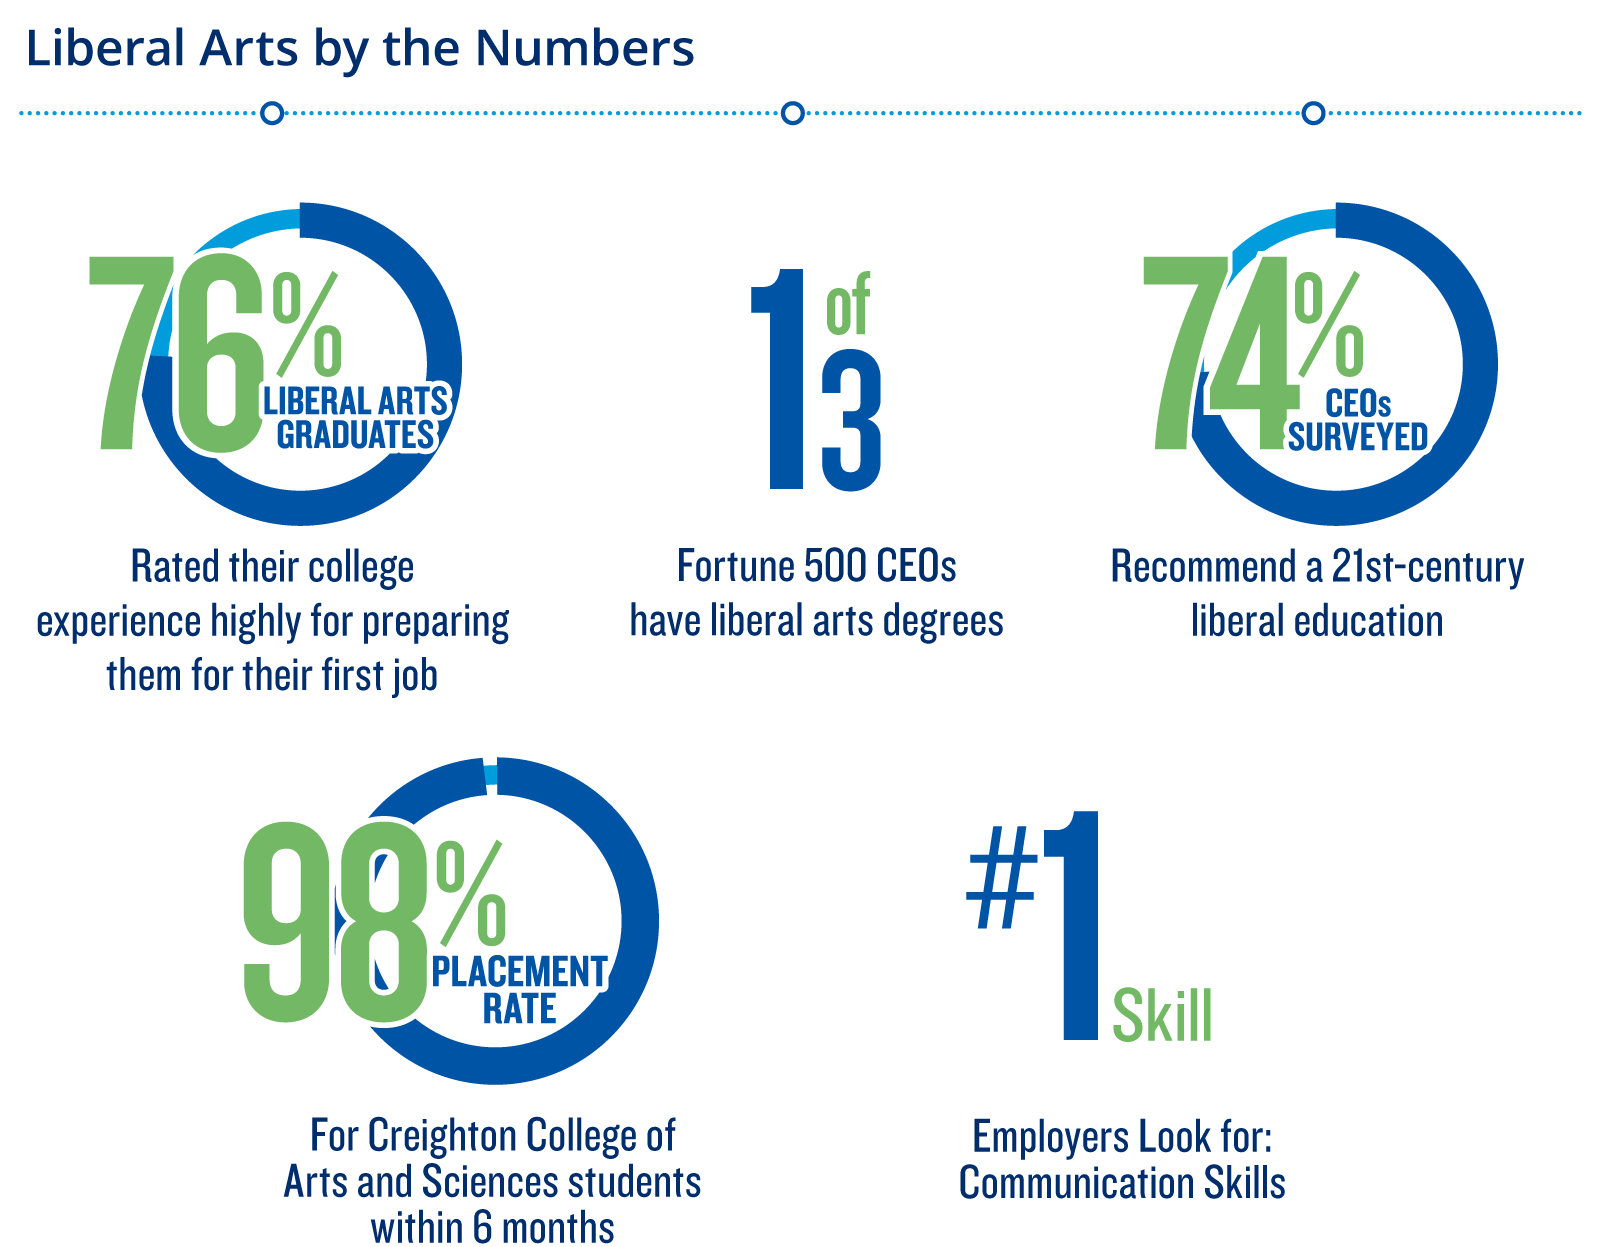 1 in 3 Fortune 500 CEOs have liberal arts degrees; 97% placement rate for CCAS graduates; Communication skills are #1 skill CEOs want in employees